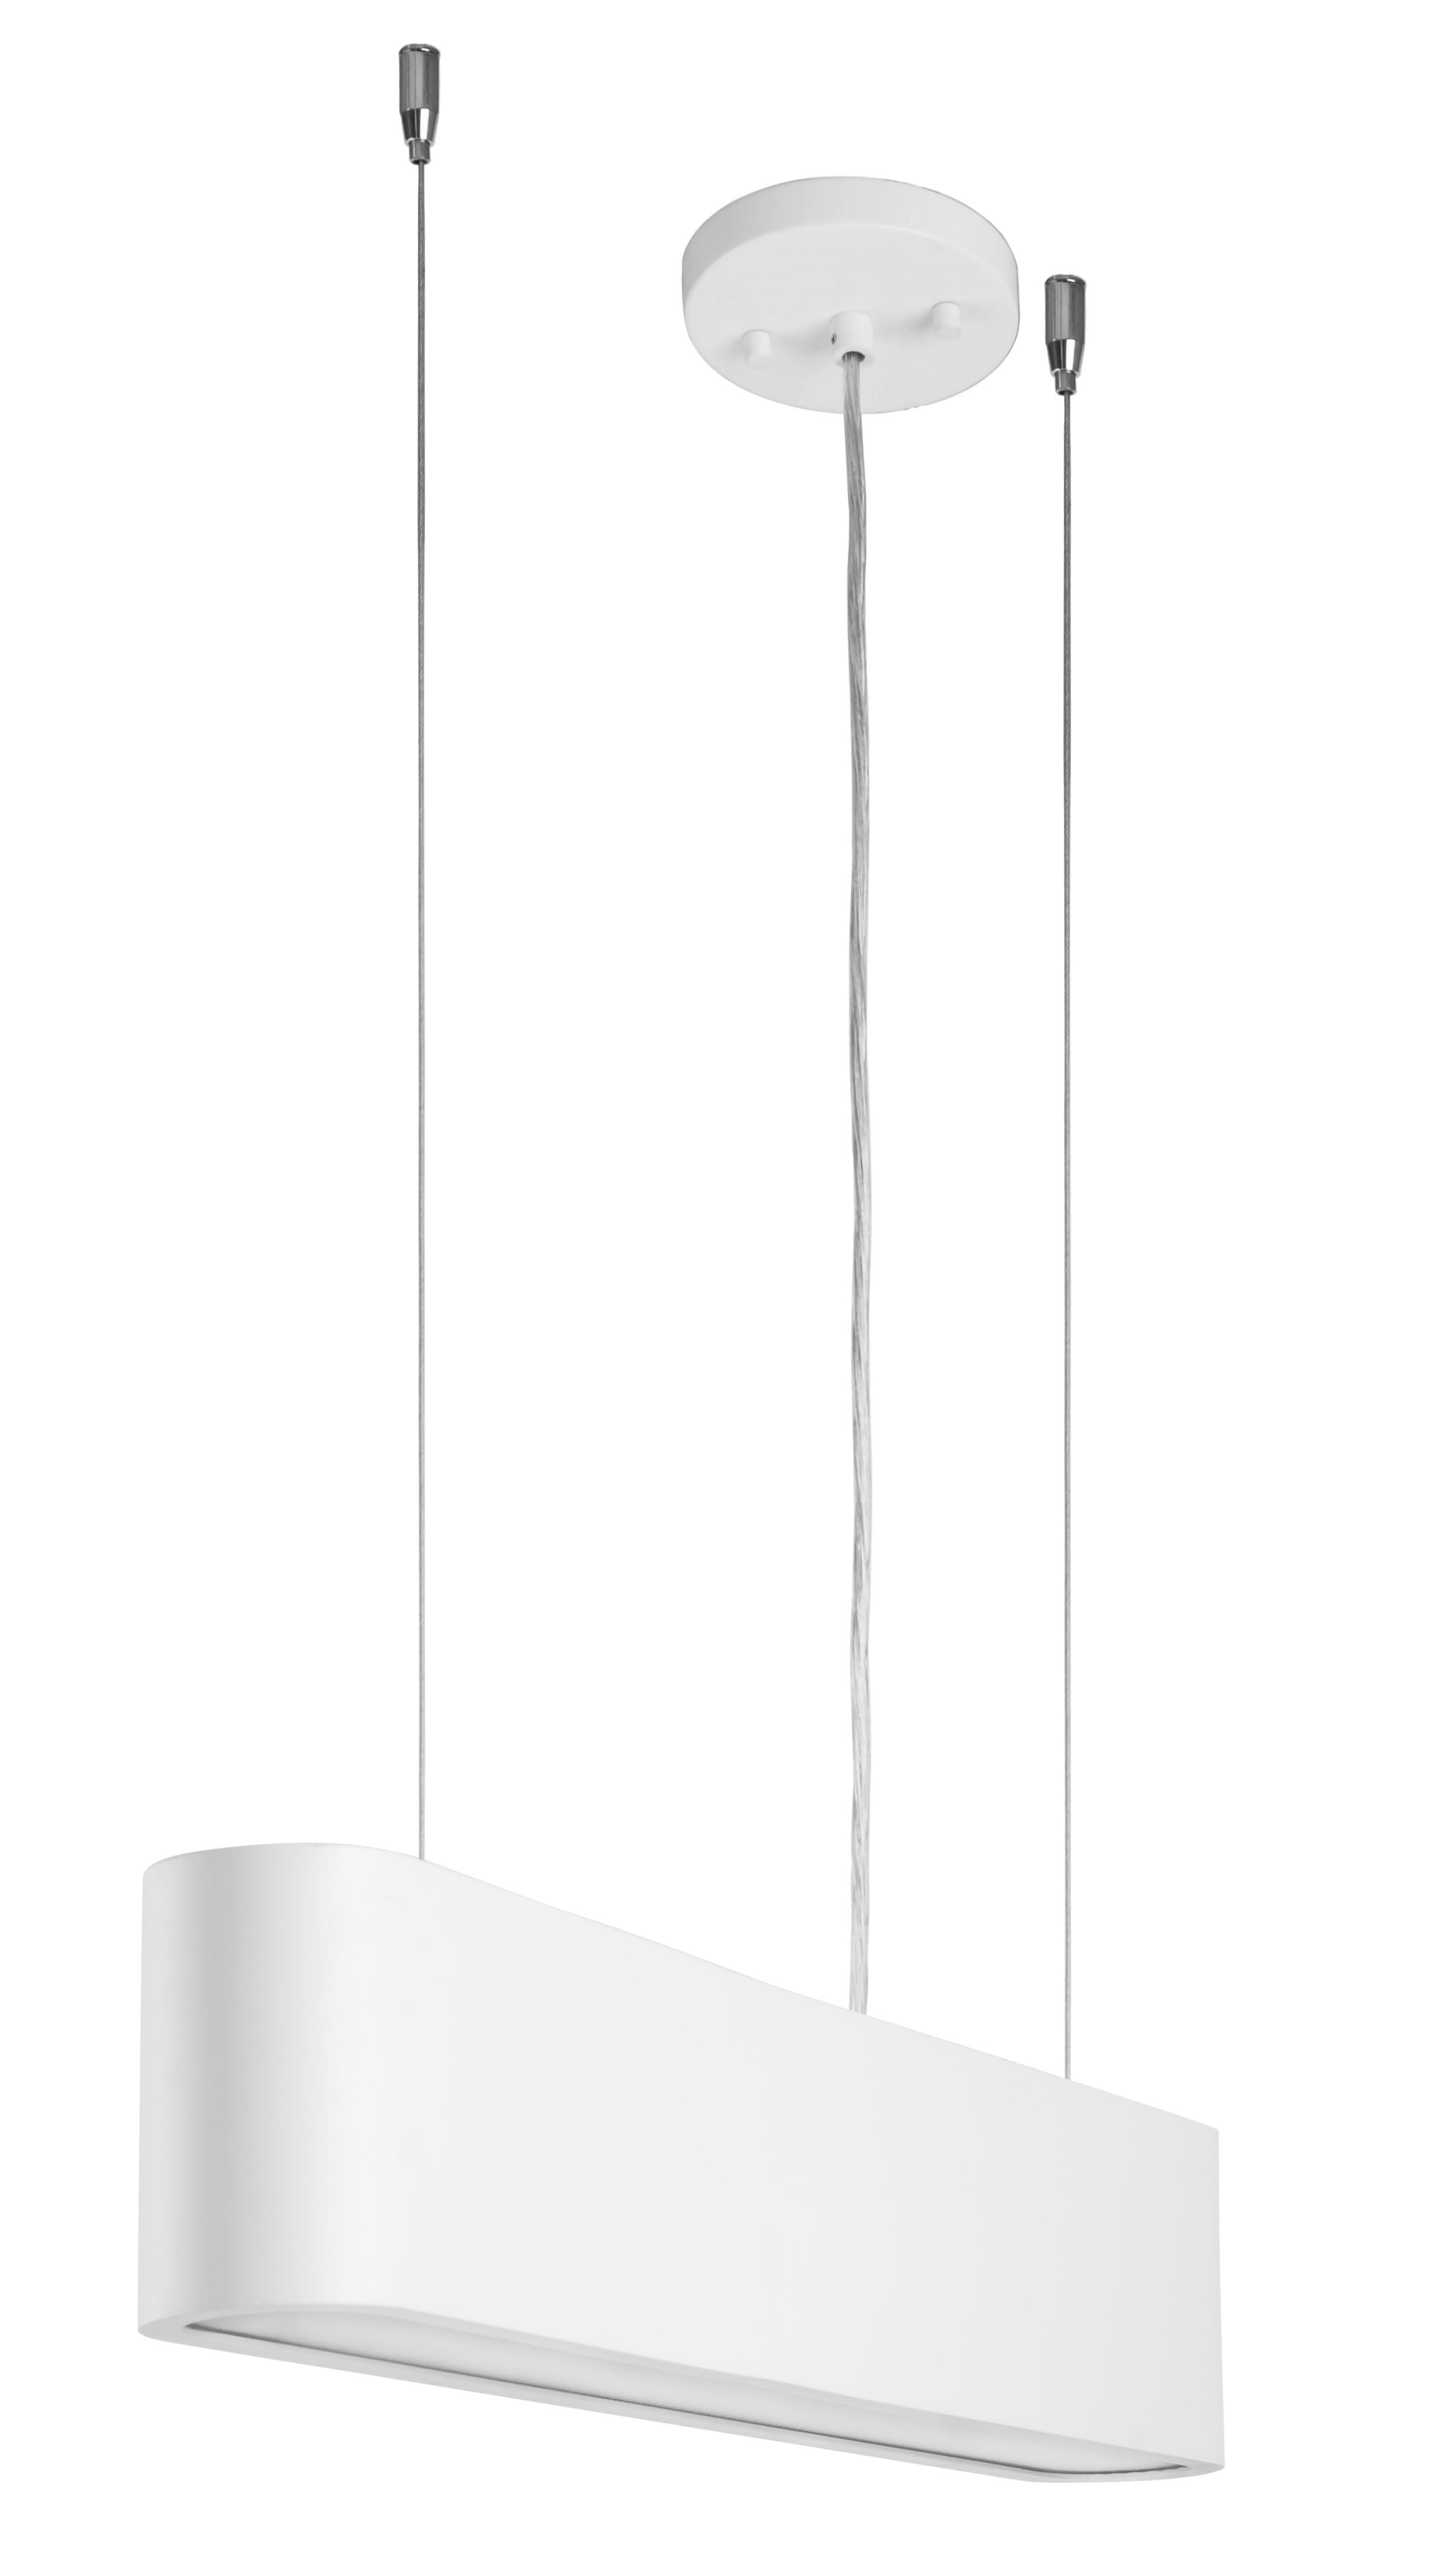 White industrial pendant lamp Illumina LED 28W